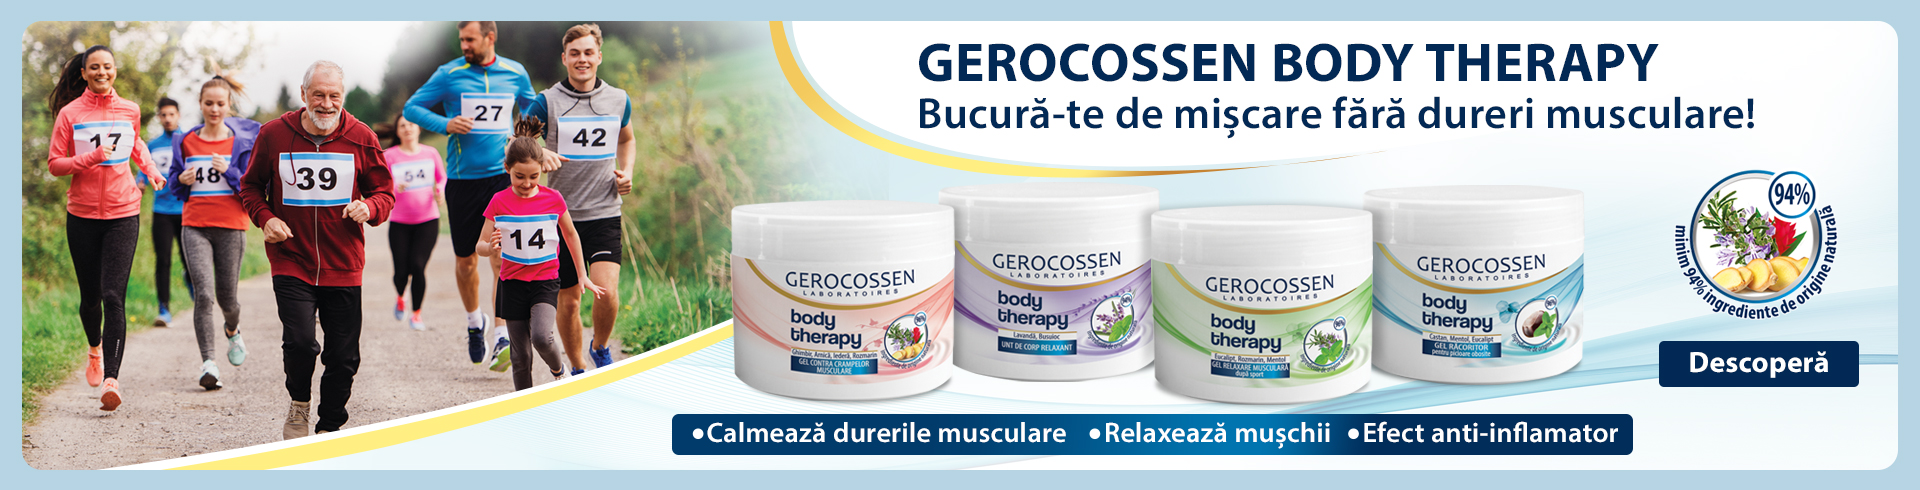 Gama body therapy 1920 x 490px hp